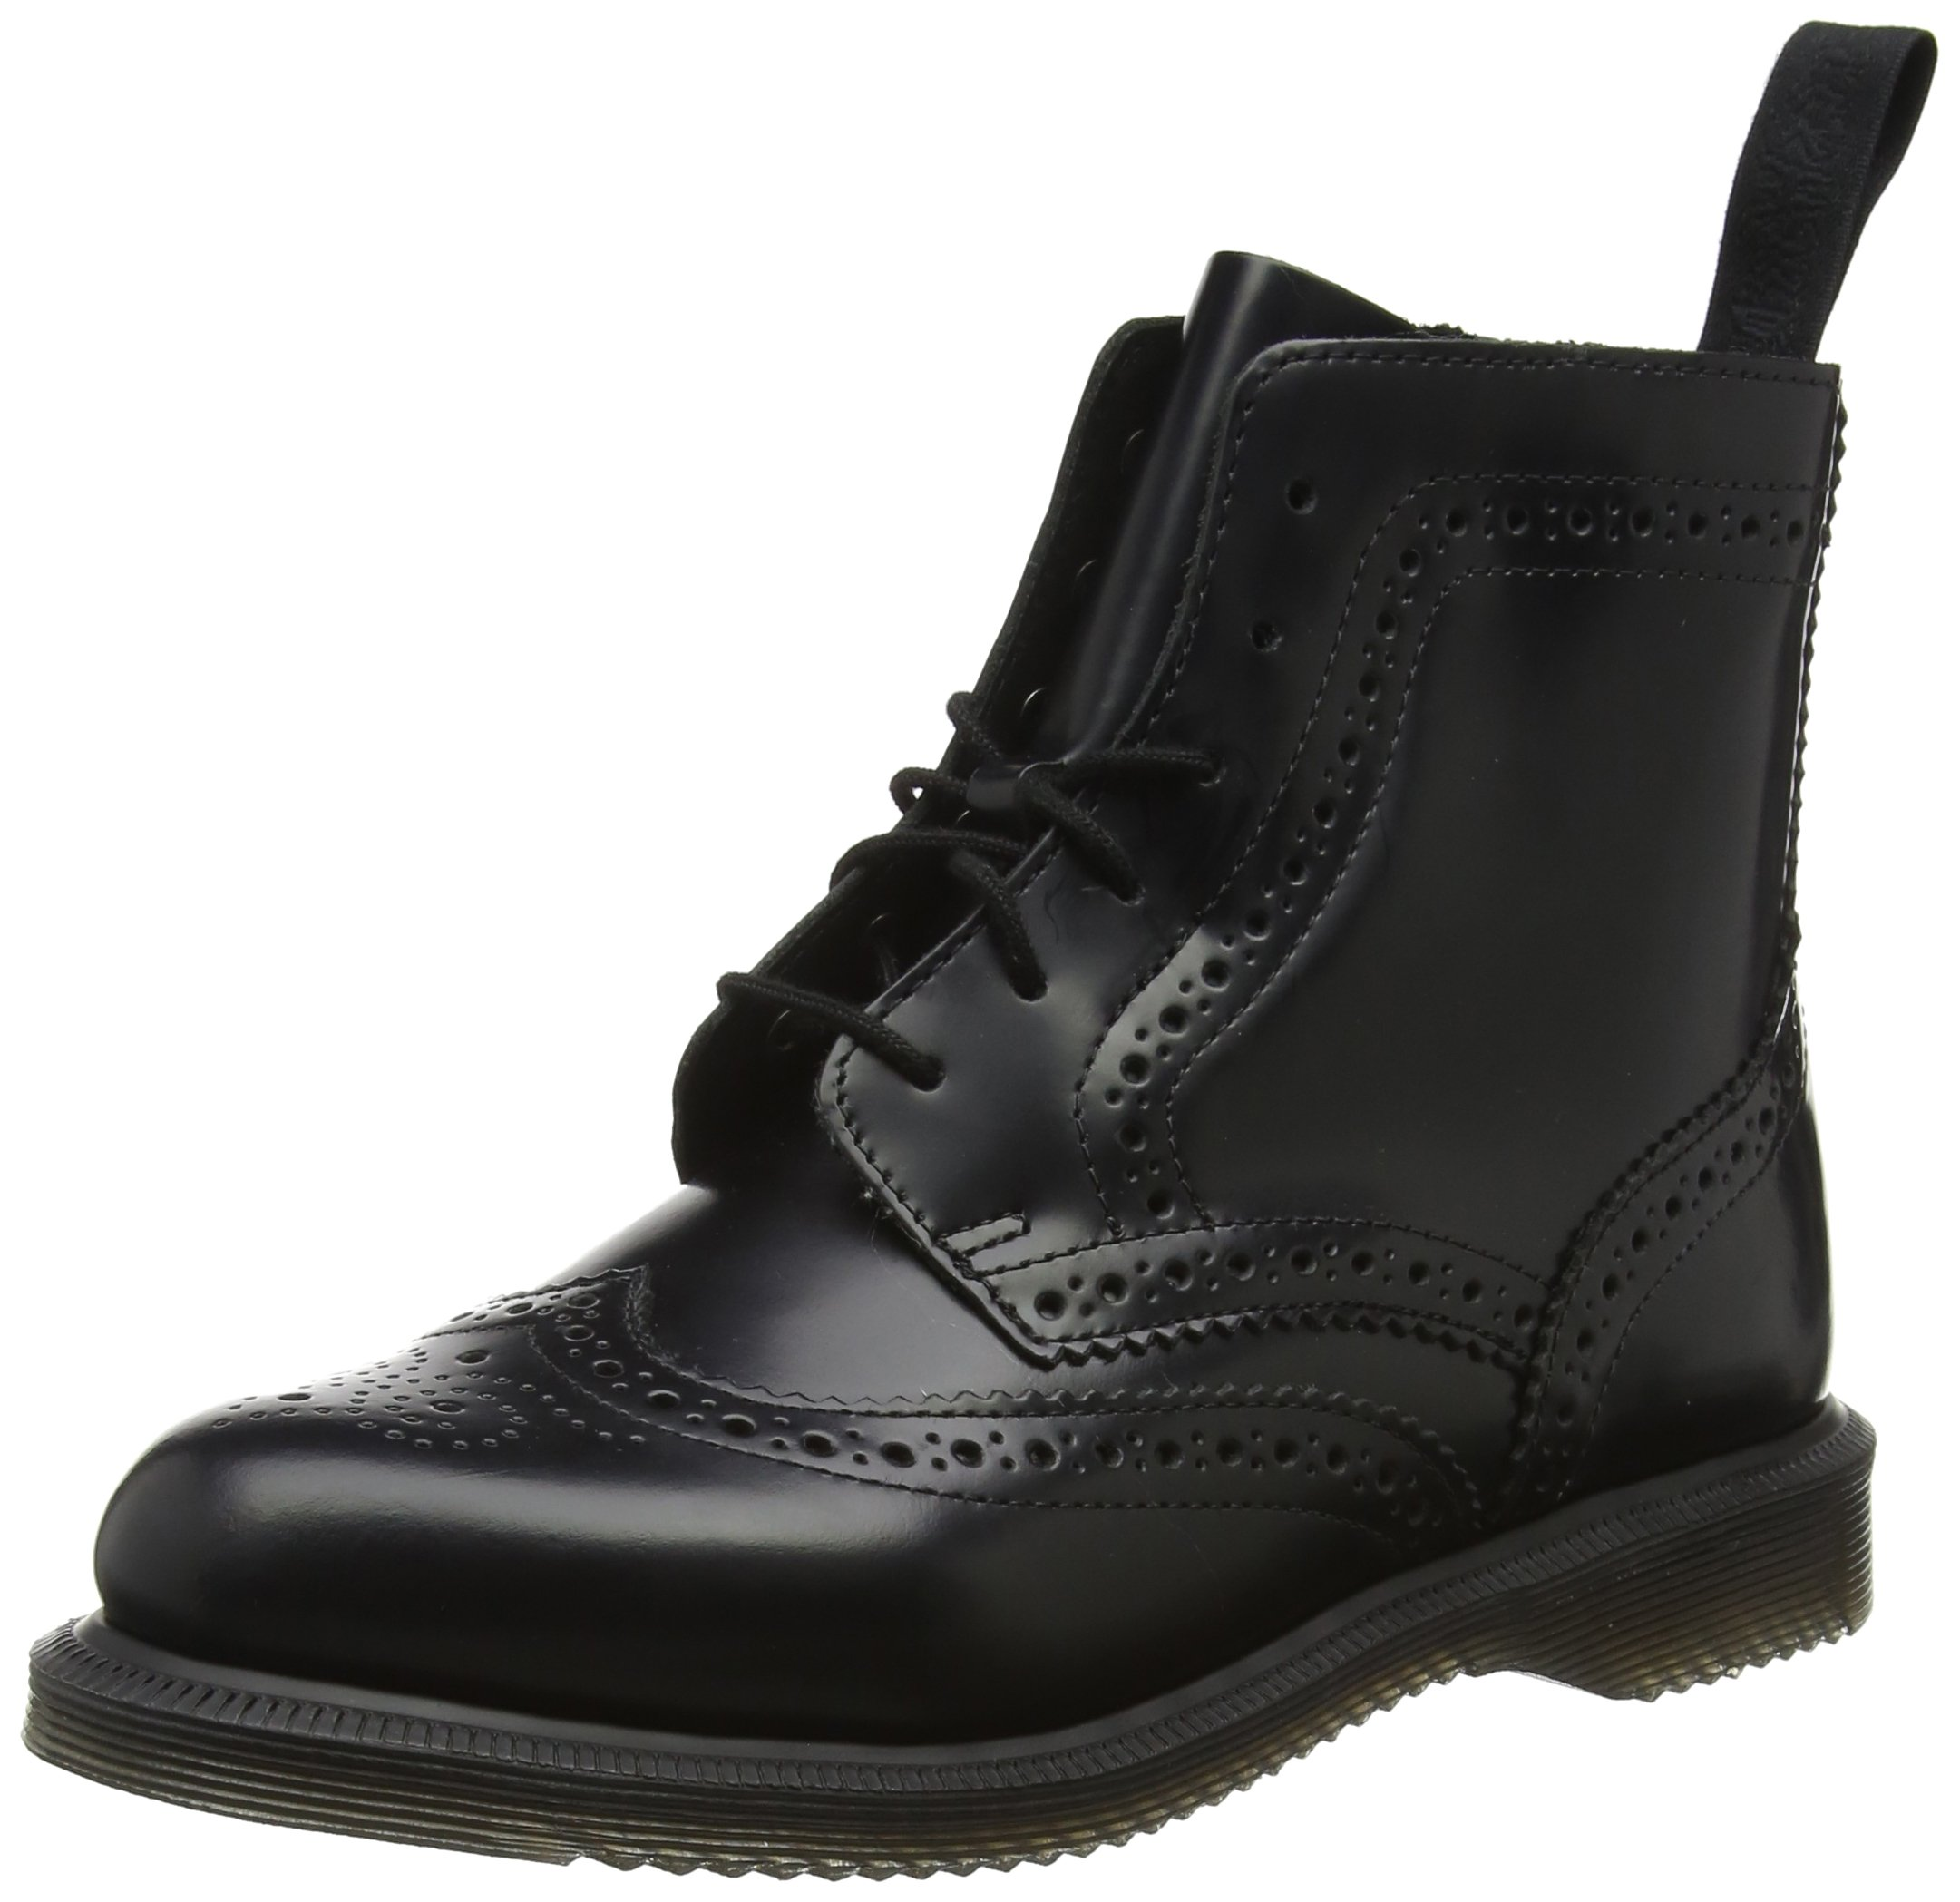 Dr. Martens Women's Delphine Fashion Boot, Black Polished Smooth Leather, 5 Medium UK (7 US)